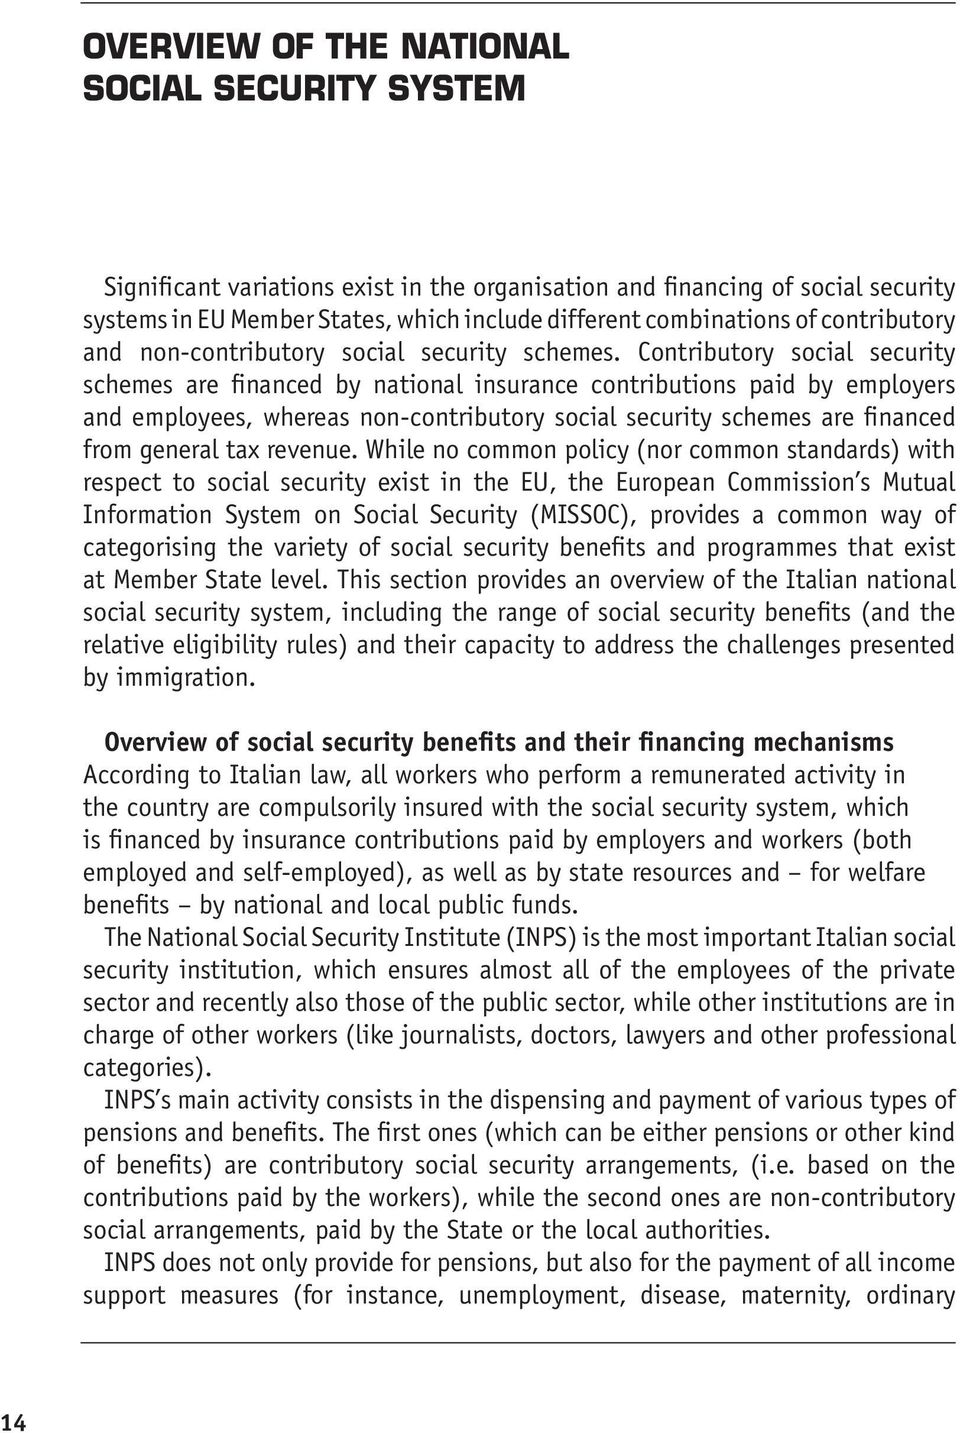 Contributory social security schemes are financed by national insurance contributions paid by employers and employees, whereas non-contributory social security schemes are financed from general tax